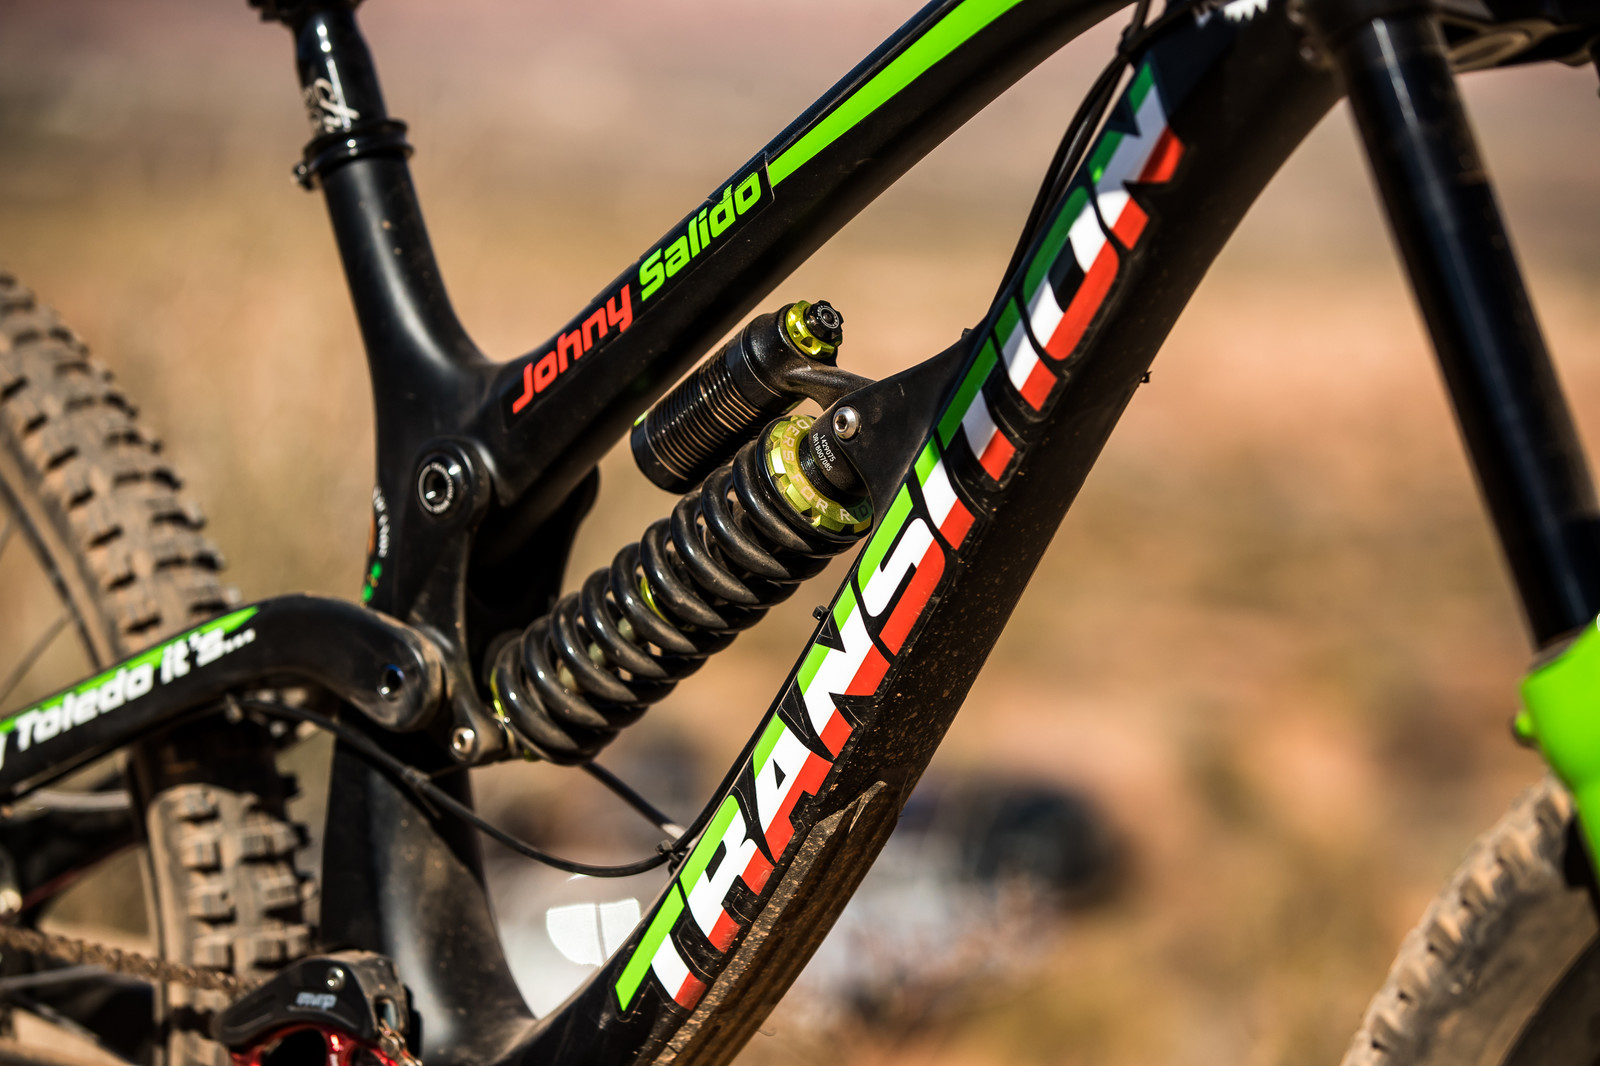 Viva Mexico! Juan Diego Salido's Transition TR11 at Rampage 2019 - RAMPAGE BIKE - Juan Diego Salido's Transition TR11 - Mountain Biking Pictures - Vital MTB